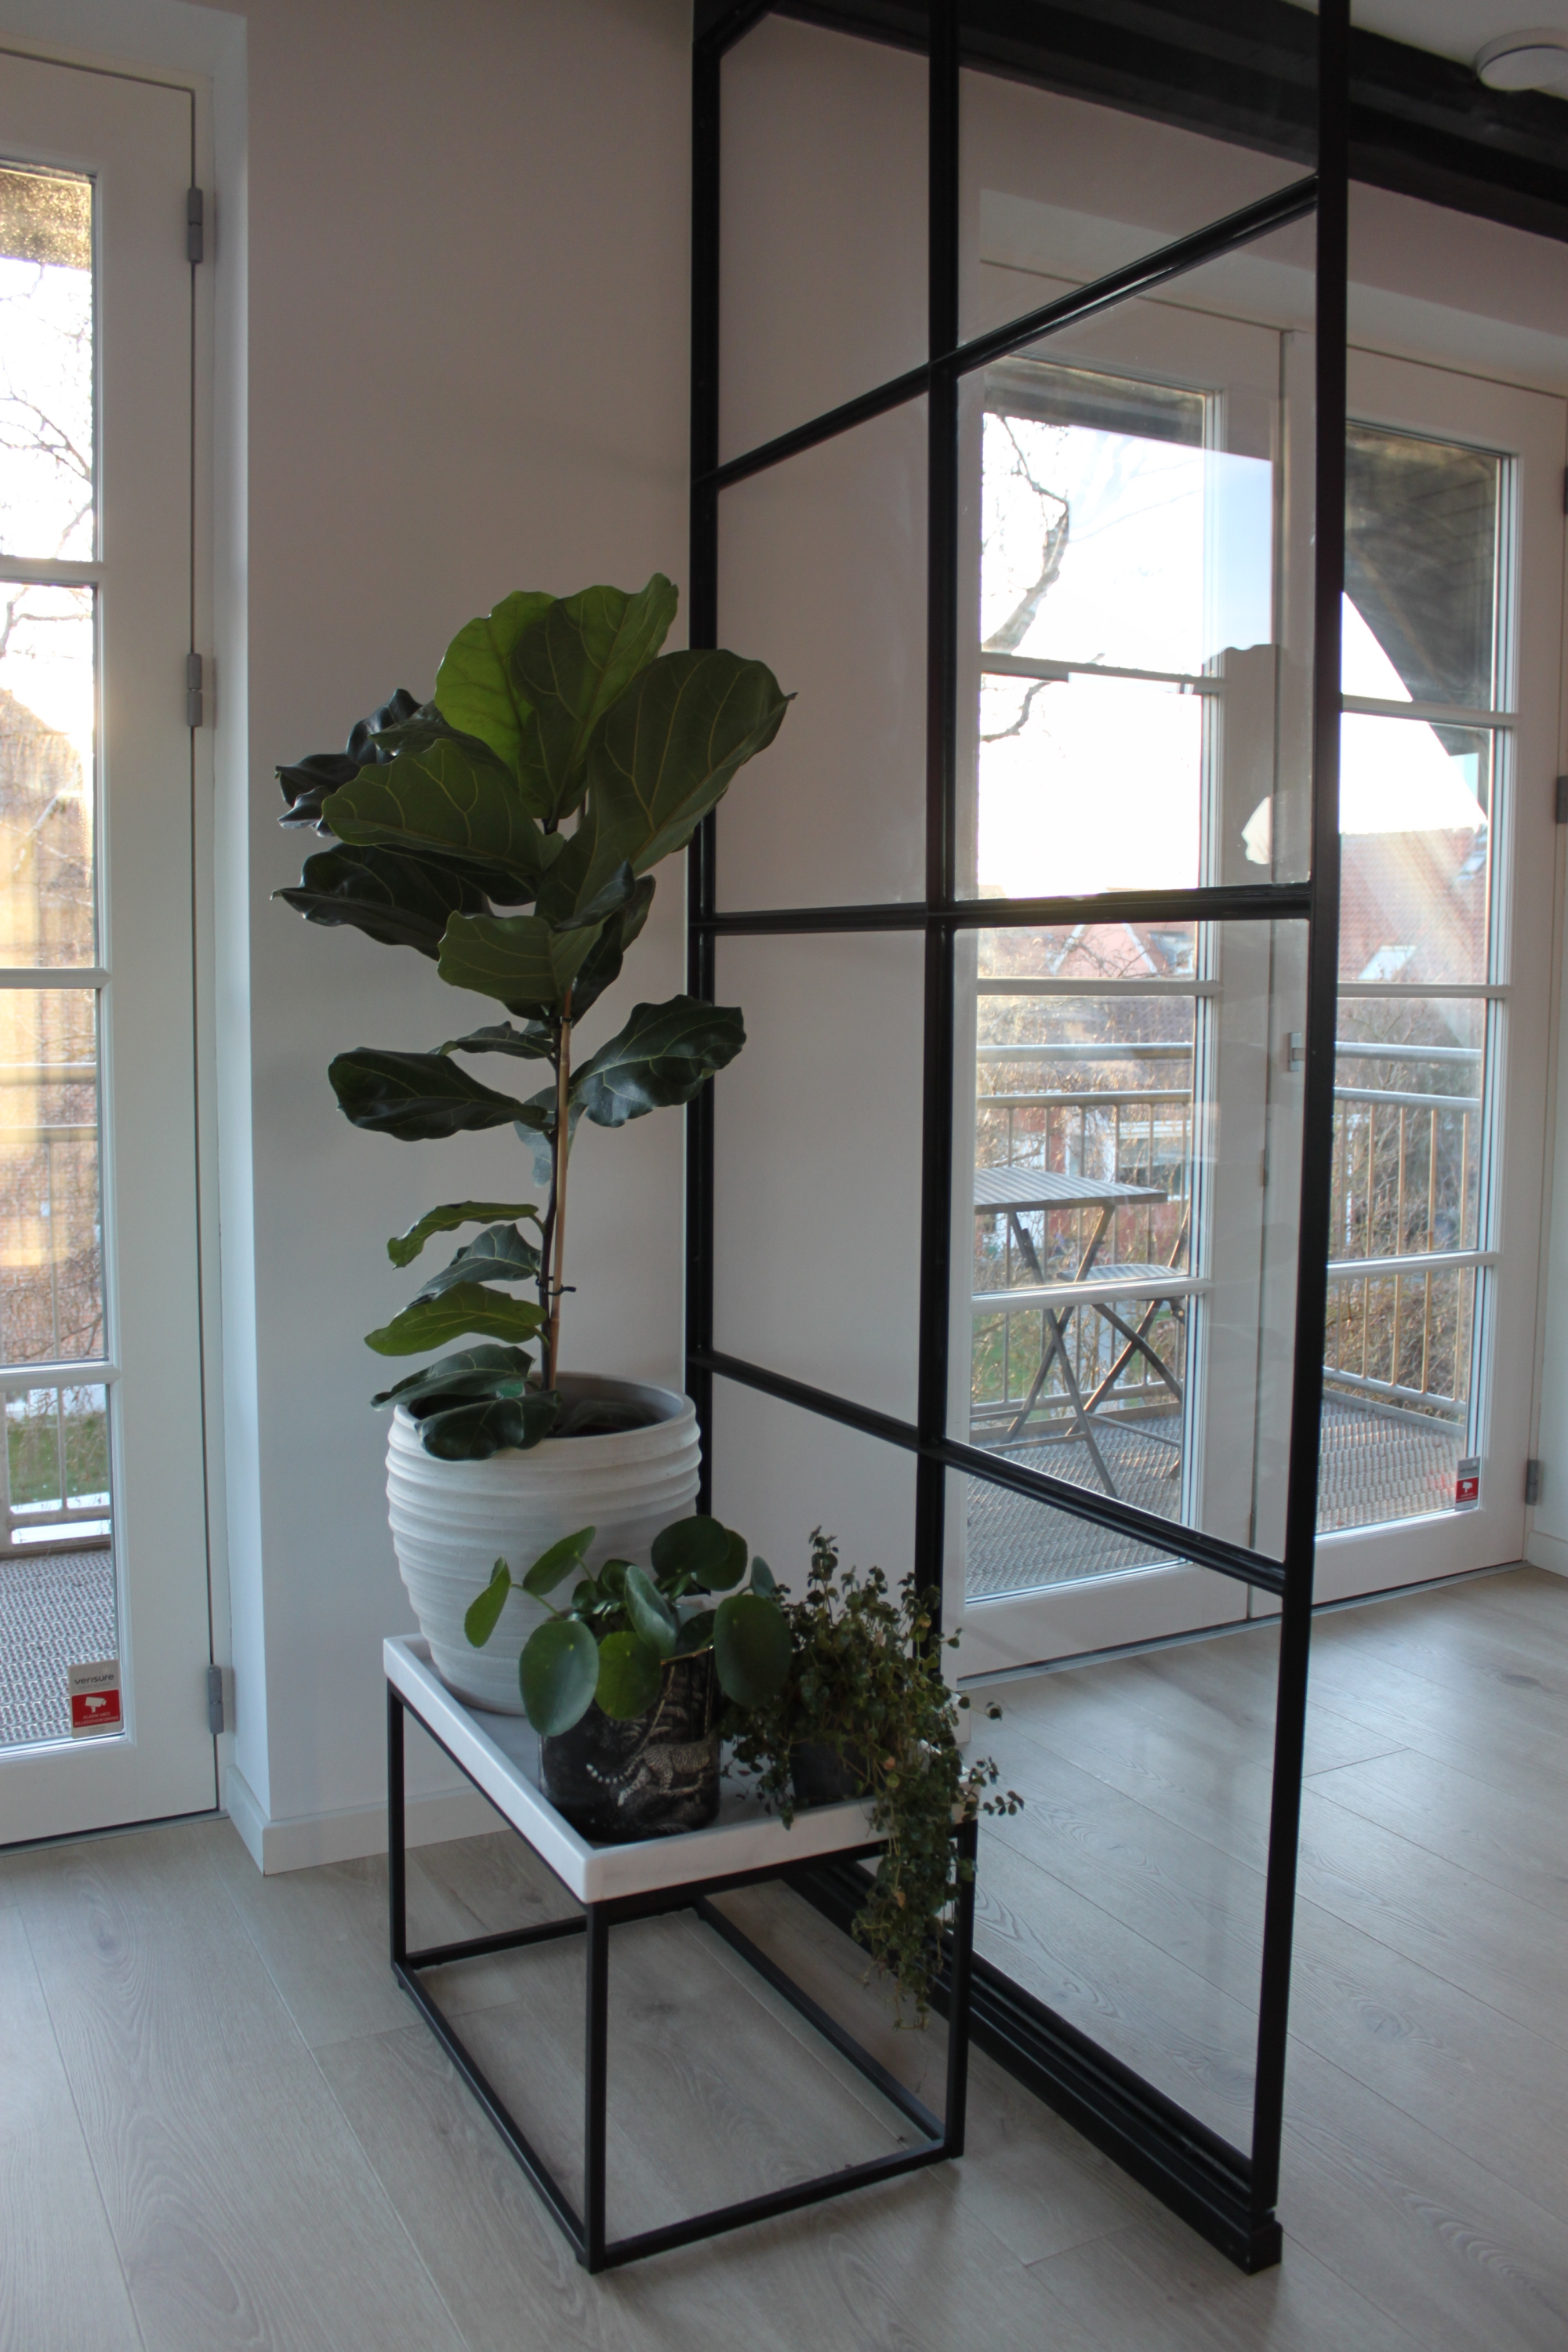 Juliana Chow Copenhagen apartment fiddle leaf fig industrial black framed windows